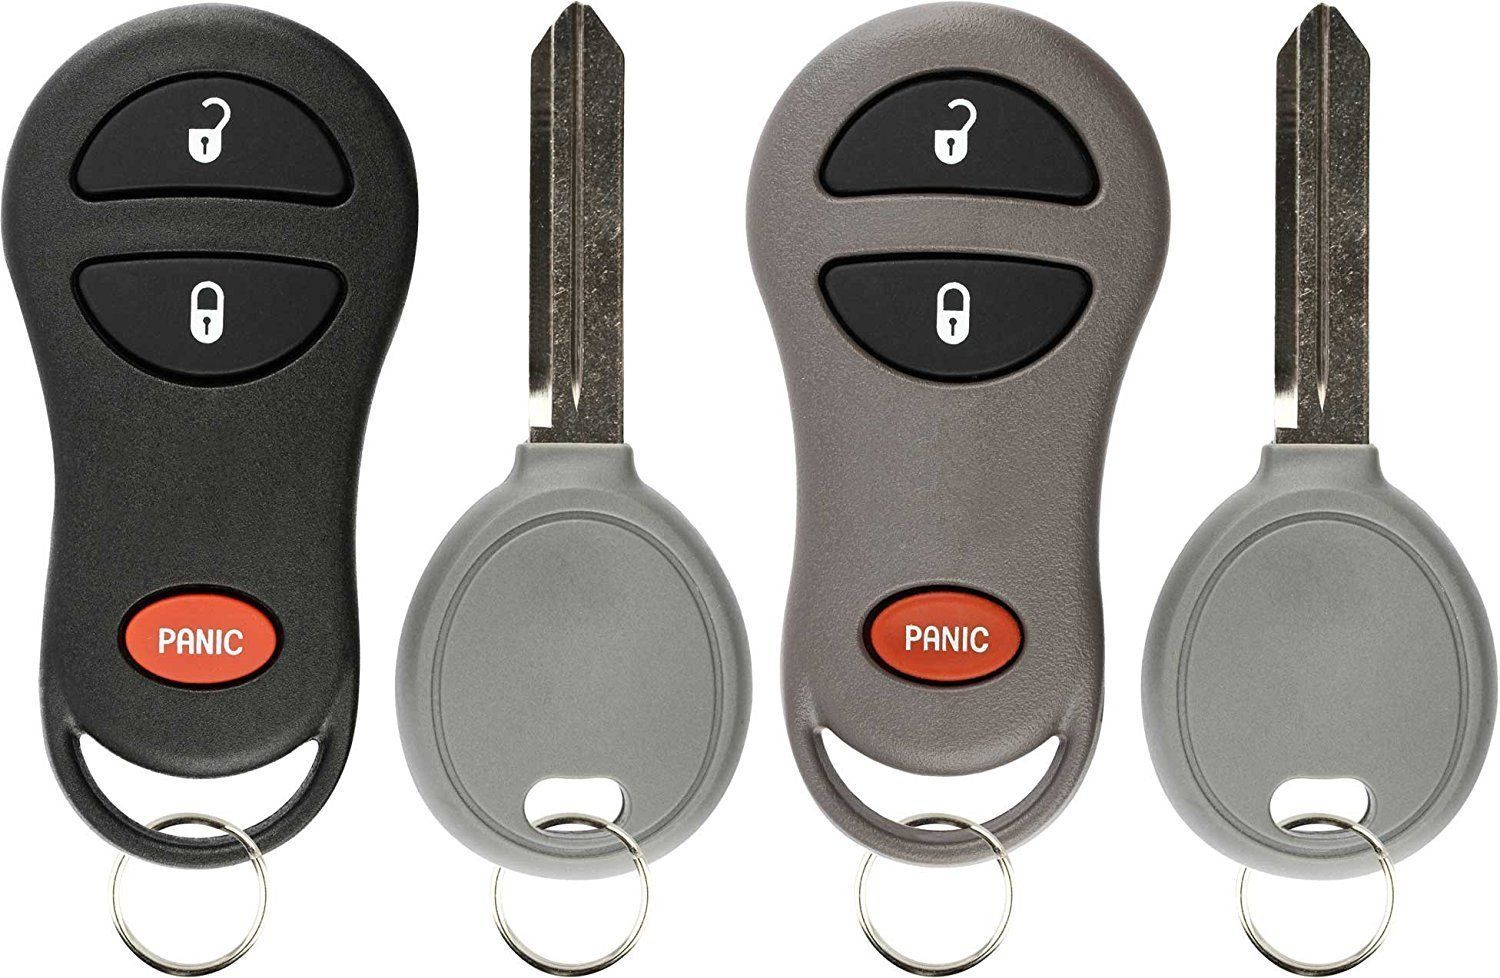 Keylessoption Keyless Entry Fob Remote Uncut Ignition Car Key Replacement For Jeep 56036859 56036860 Car Key Replacement Key Replacement Key Fob Replacement